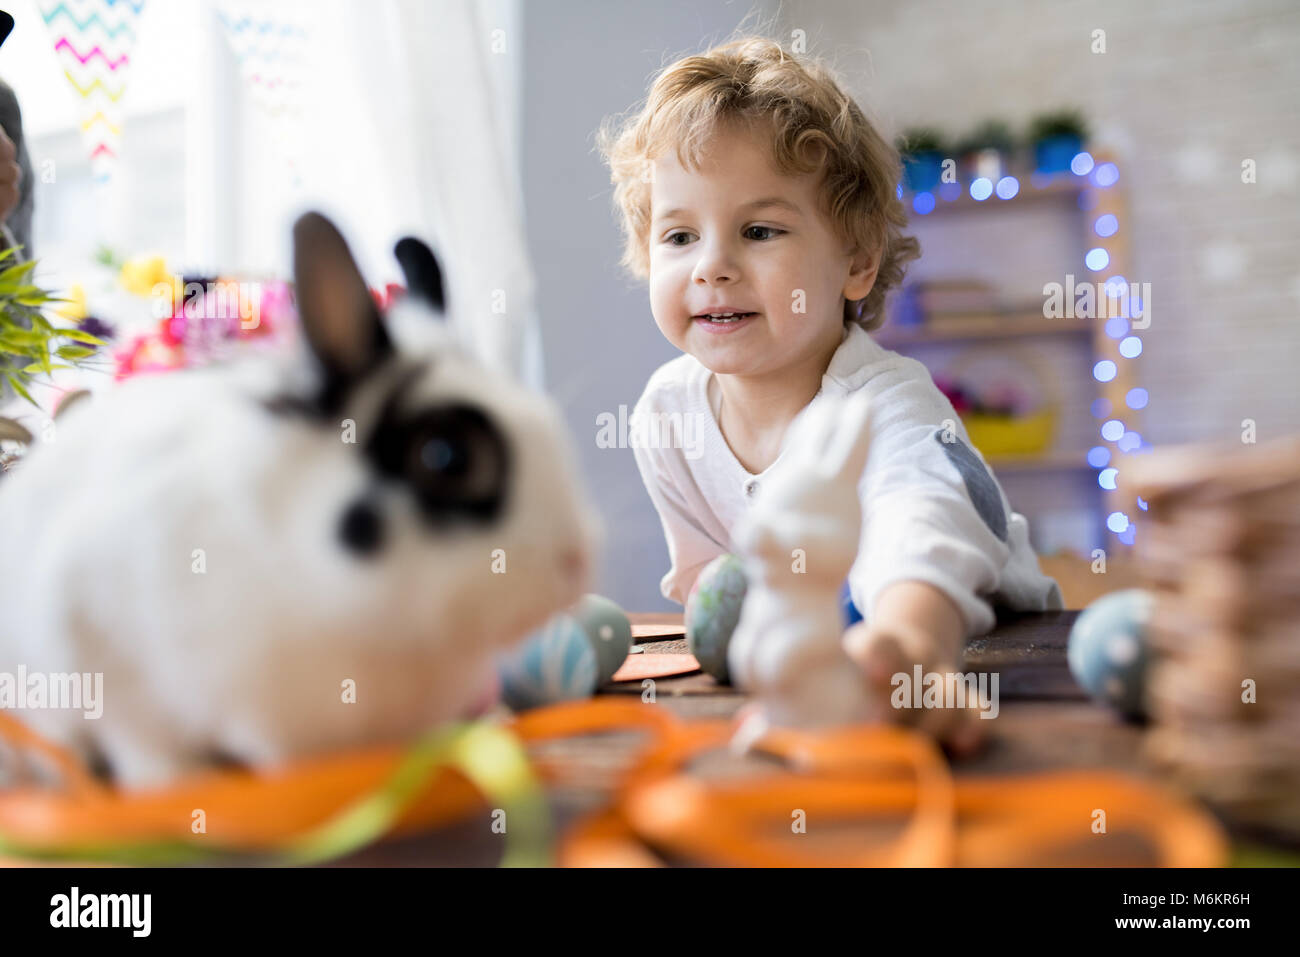 Little Boy Playing with Pet Bunny - Stock Image